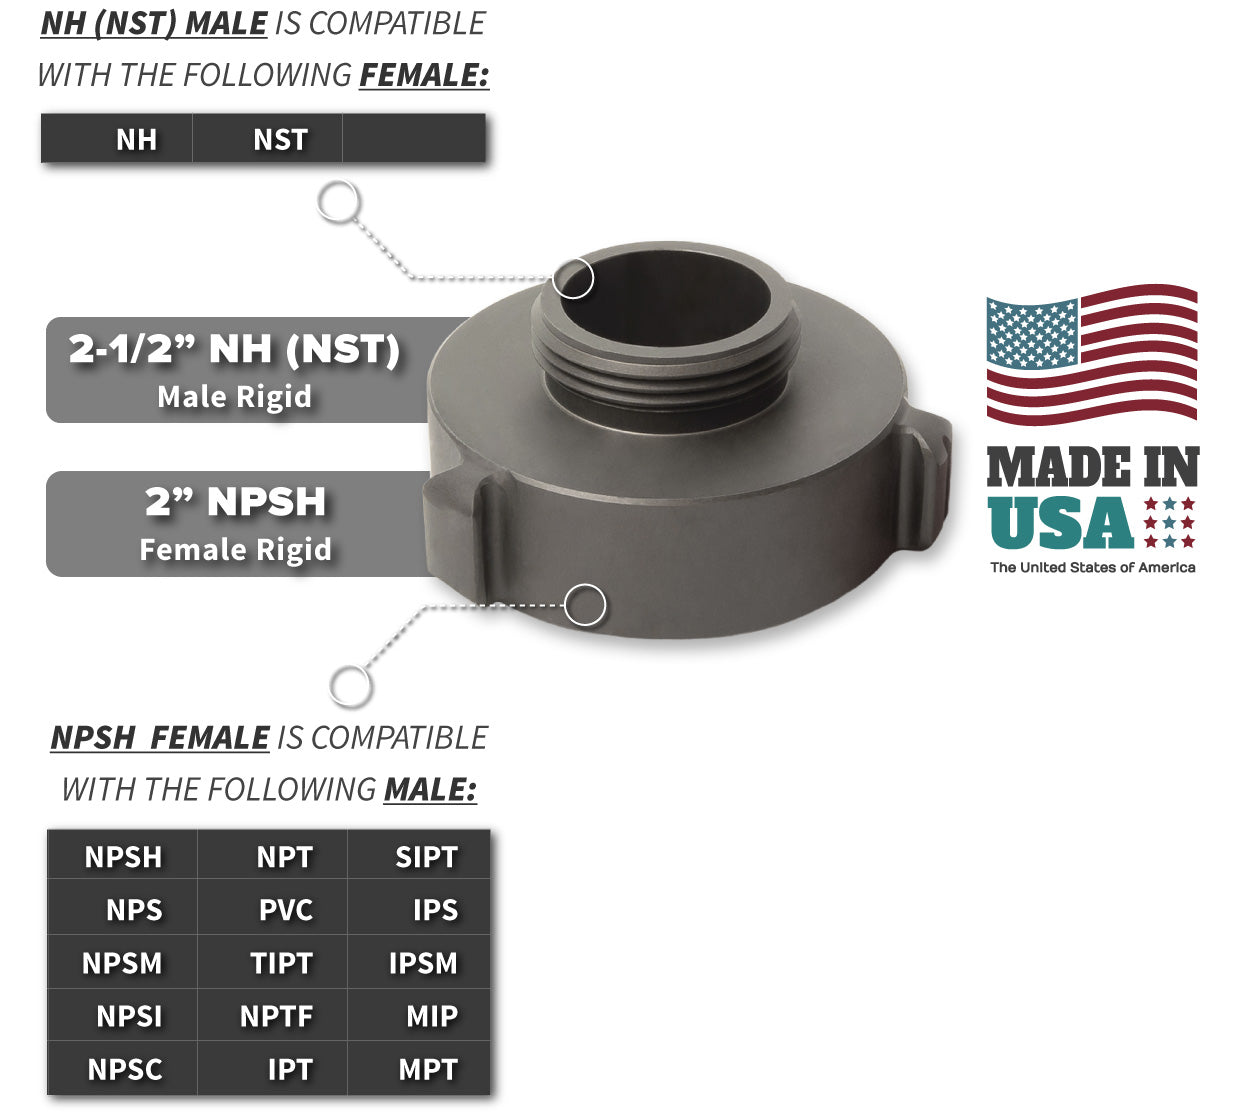 2 Inch NPSH Female x 2.5 Inch NH-NST Male Compatibility Thread Chart